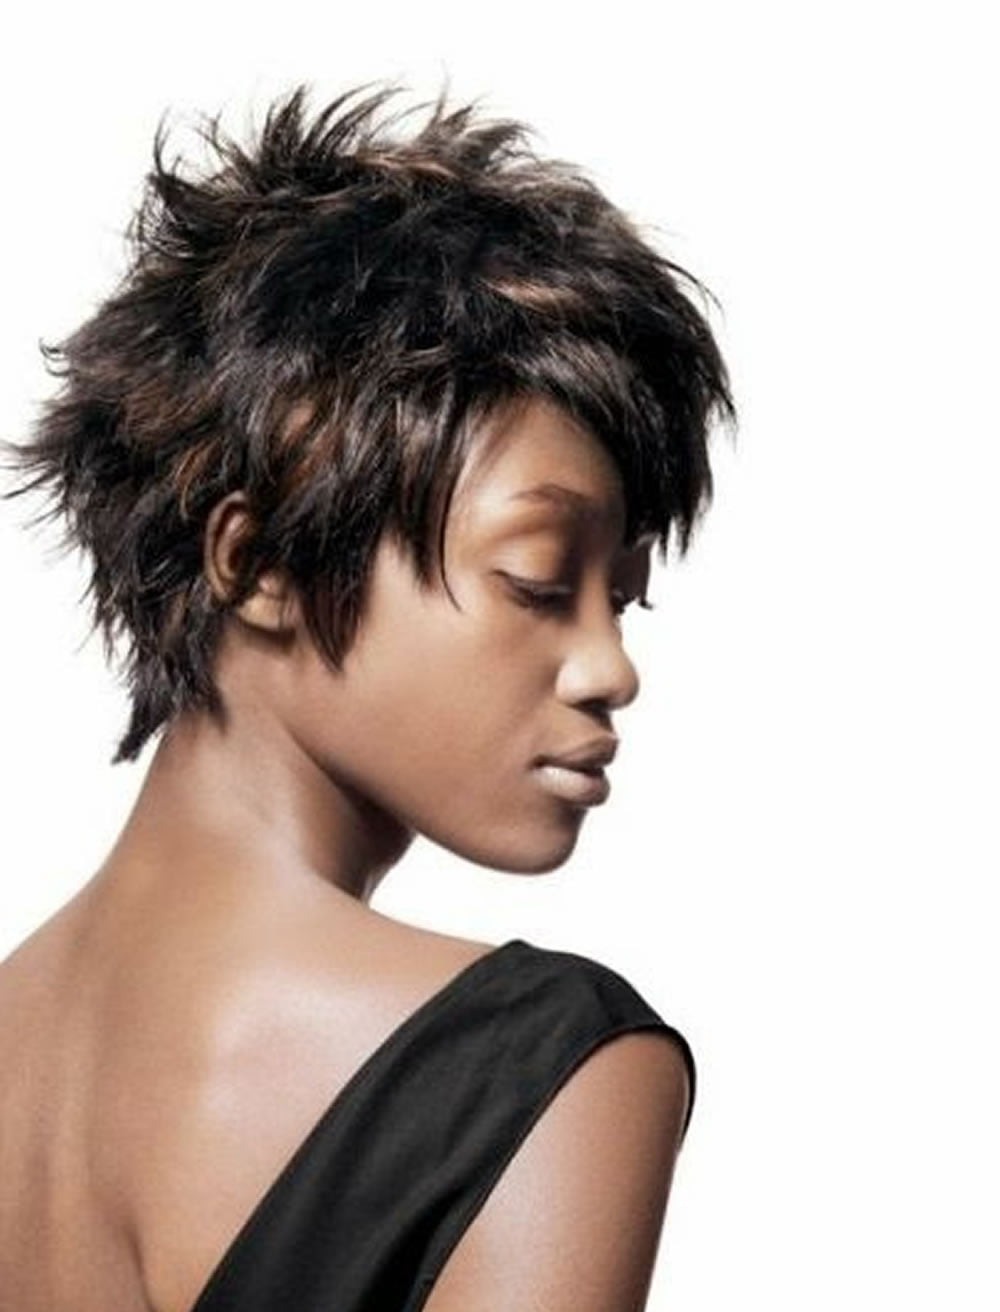 2018 Pixie Haircuts For Black Women - 26 Coolest Black Fine Hair - Page 2 - HAIRSTYLES